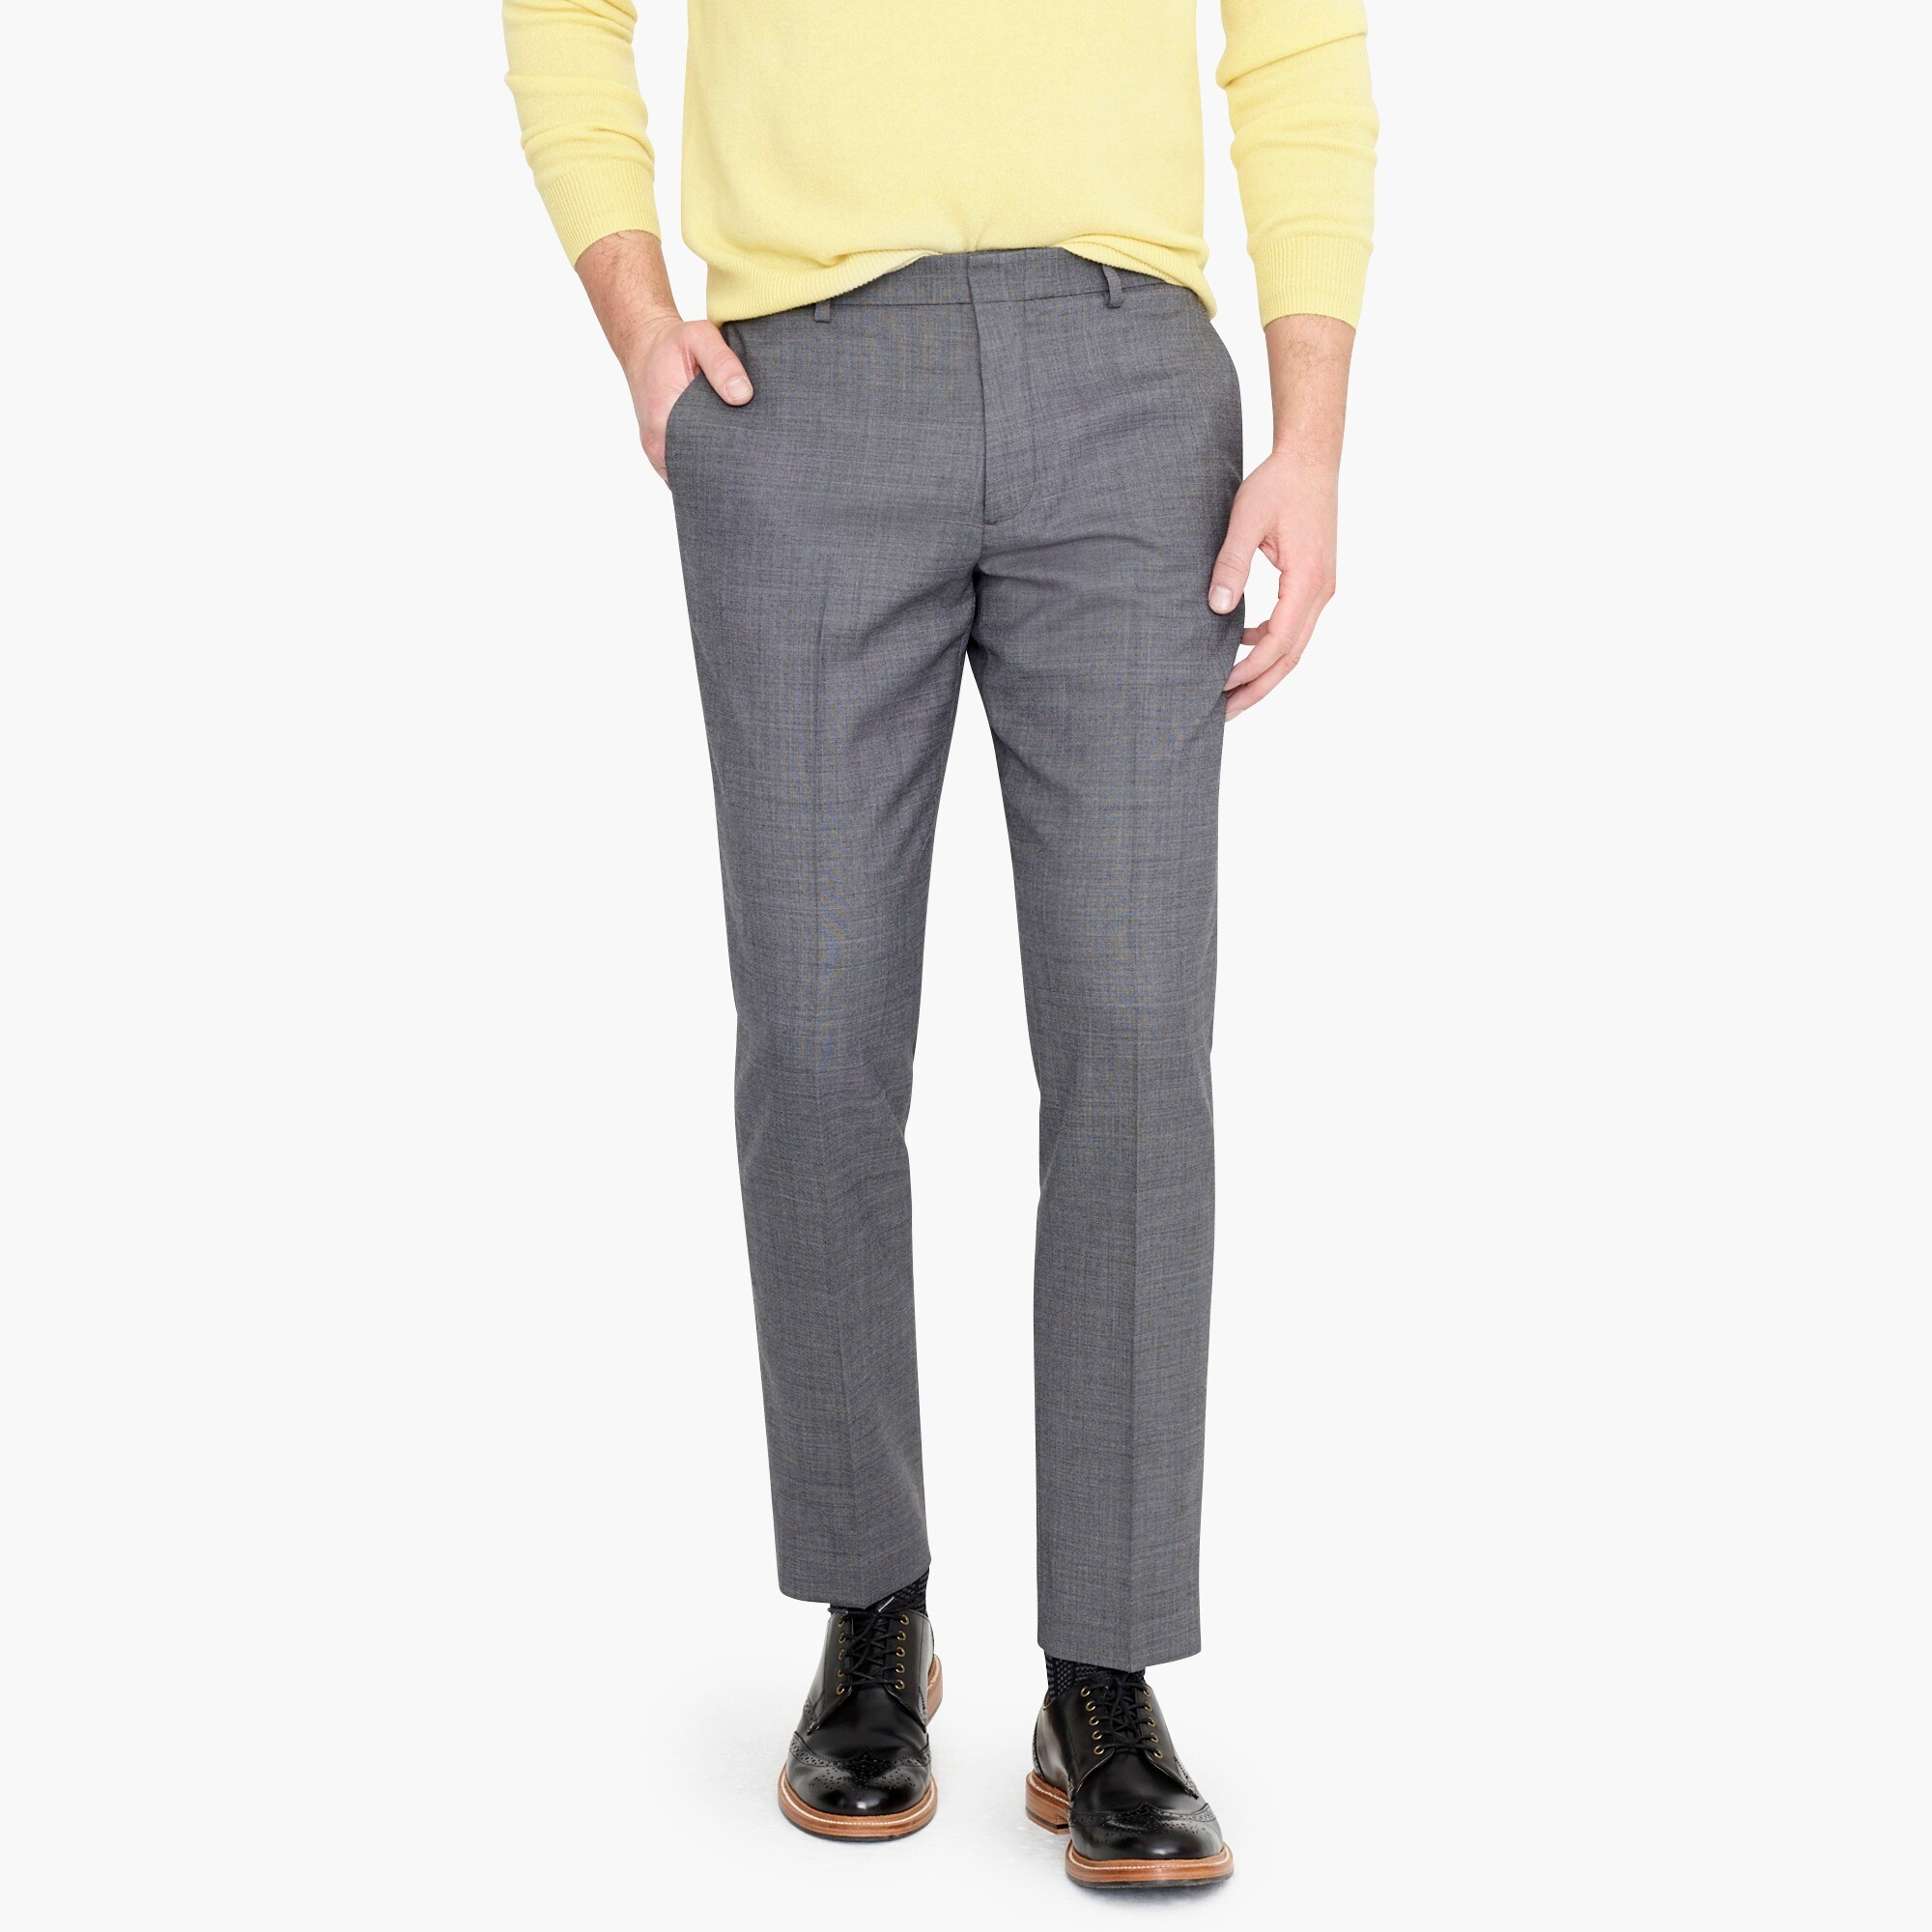 Ludlow Slim-fit Pant - J.Crew's version of the wool go-to's for business casual